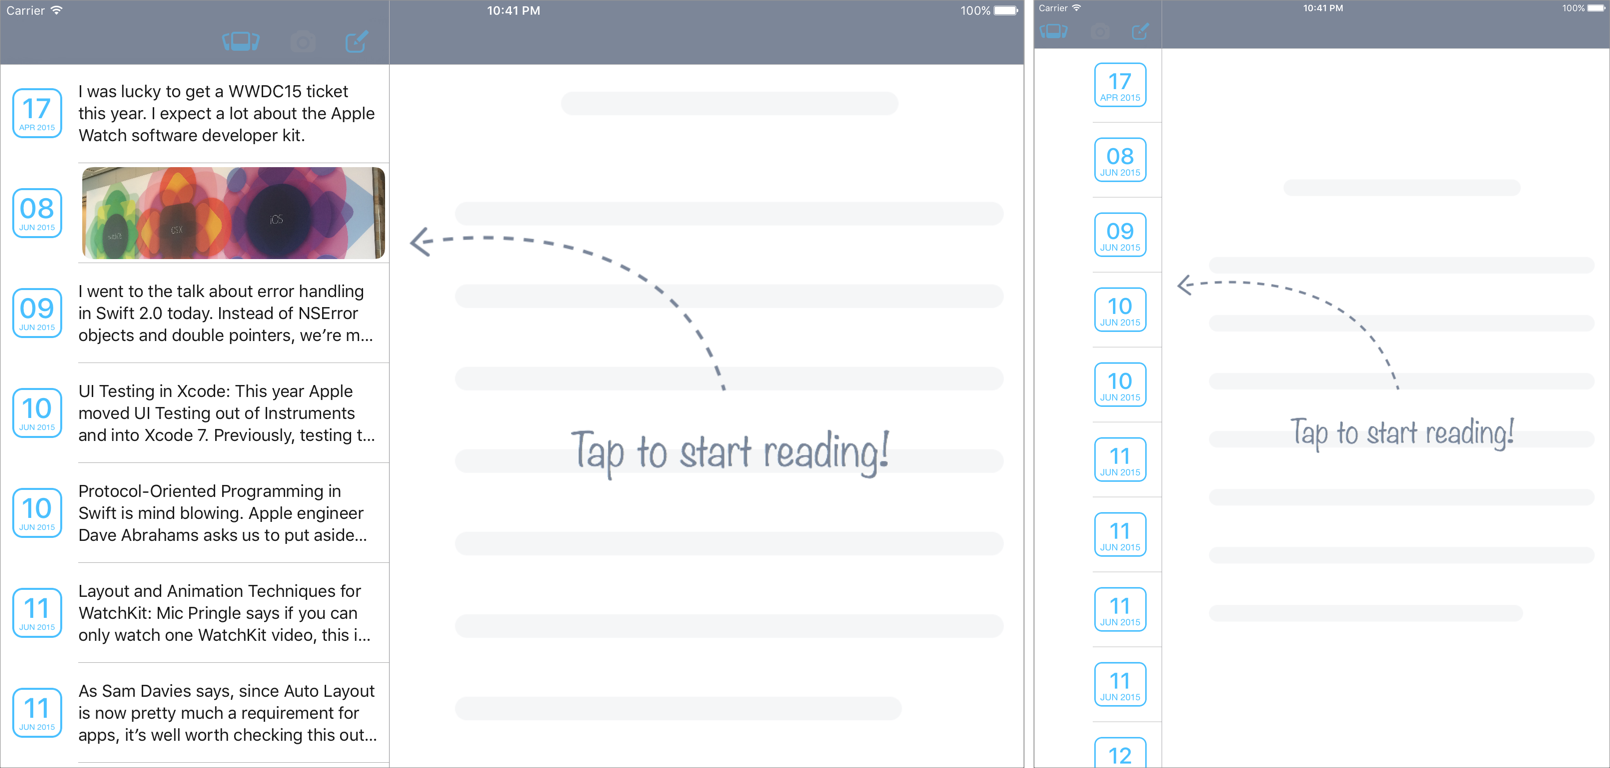 Advanced Article Reader App | AppBackyard : 200+ Mobile